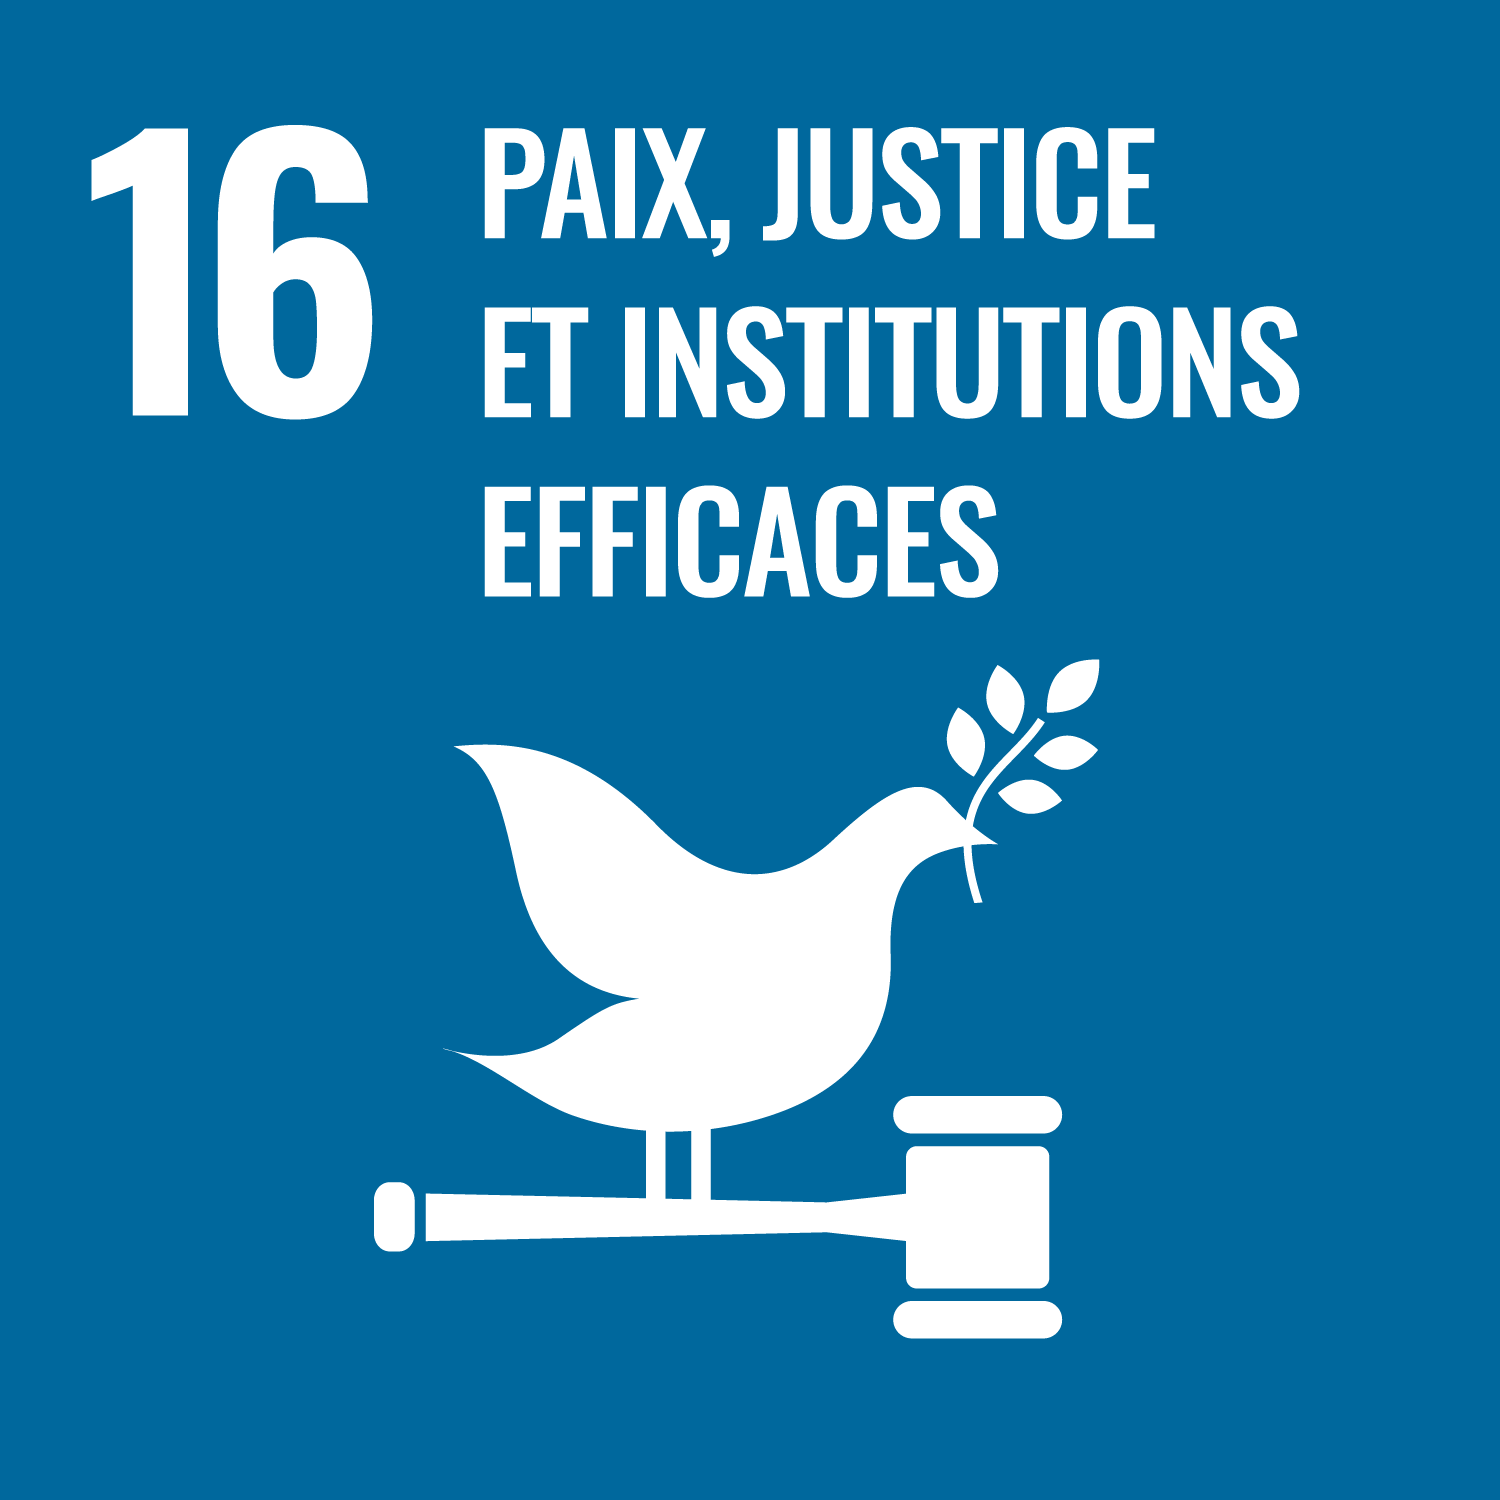 RSE 16 paix justice institutions efficaces